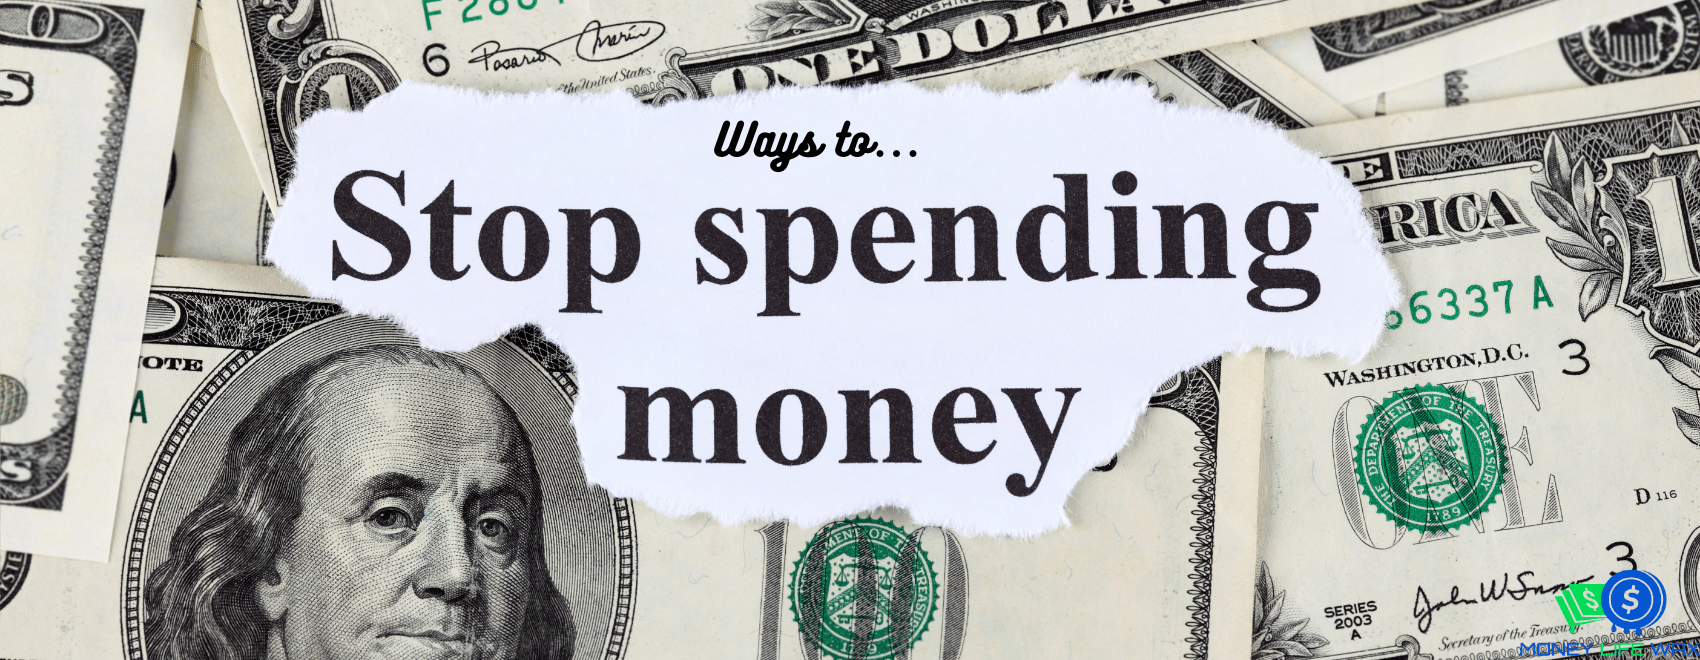 ways to stop spending money